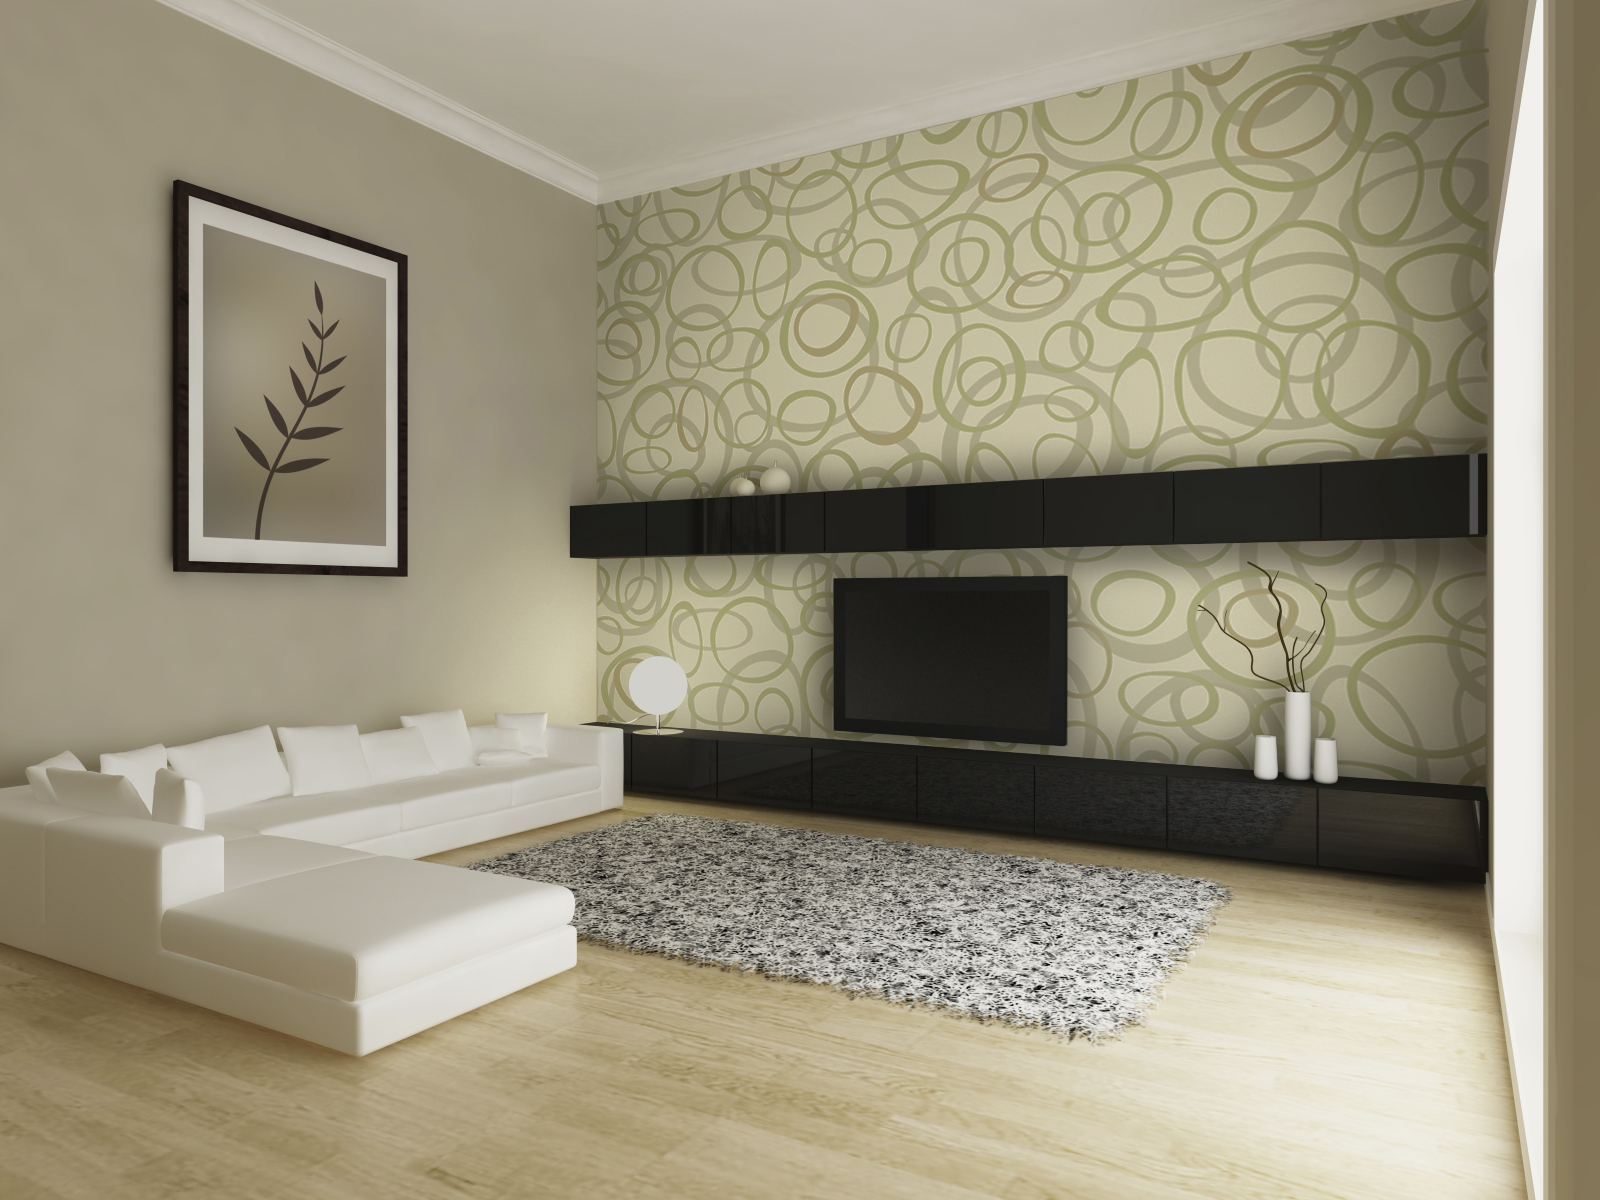 Endearing 60 Interior Design Wallpaper Design Decoration Of Best